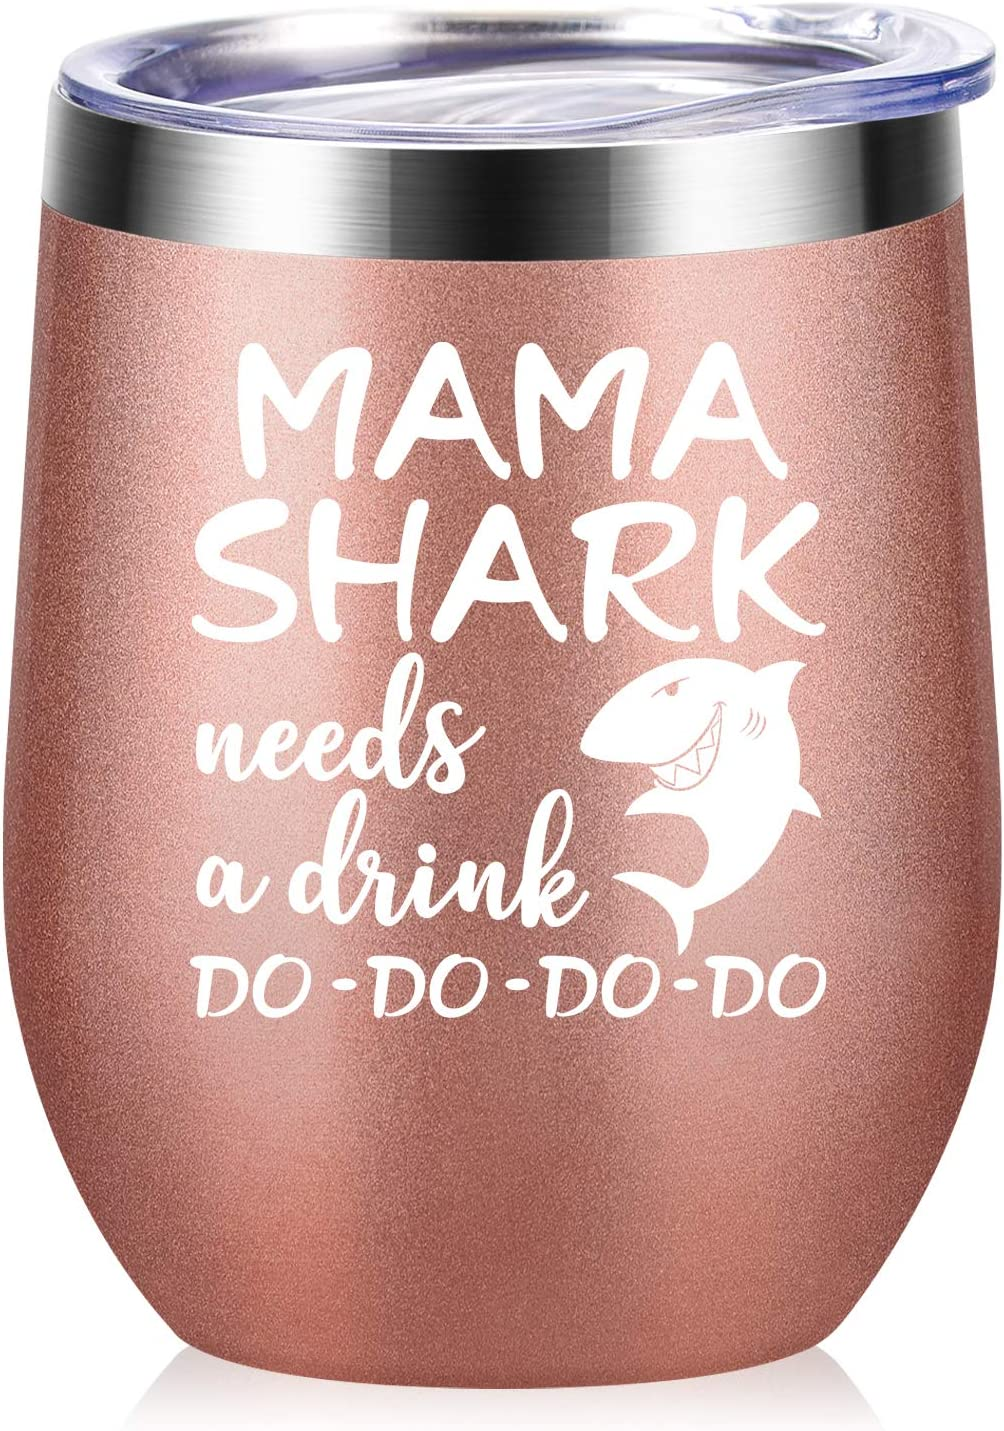 Mama Shark Needs a Drink - Gifts for Mom - Funny Birthday Gifts for Mom from Daughter, Son - Mom gifts for Christmas, Mother's Day, New Mon, Mommy, Wife, Women - 12 oz Wine Tumbler - Rose Gold